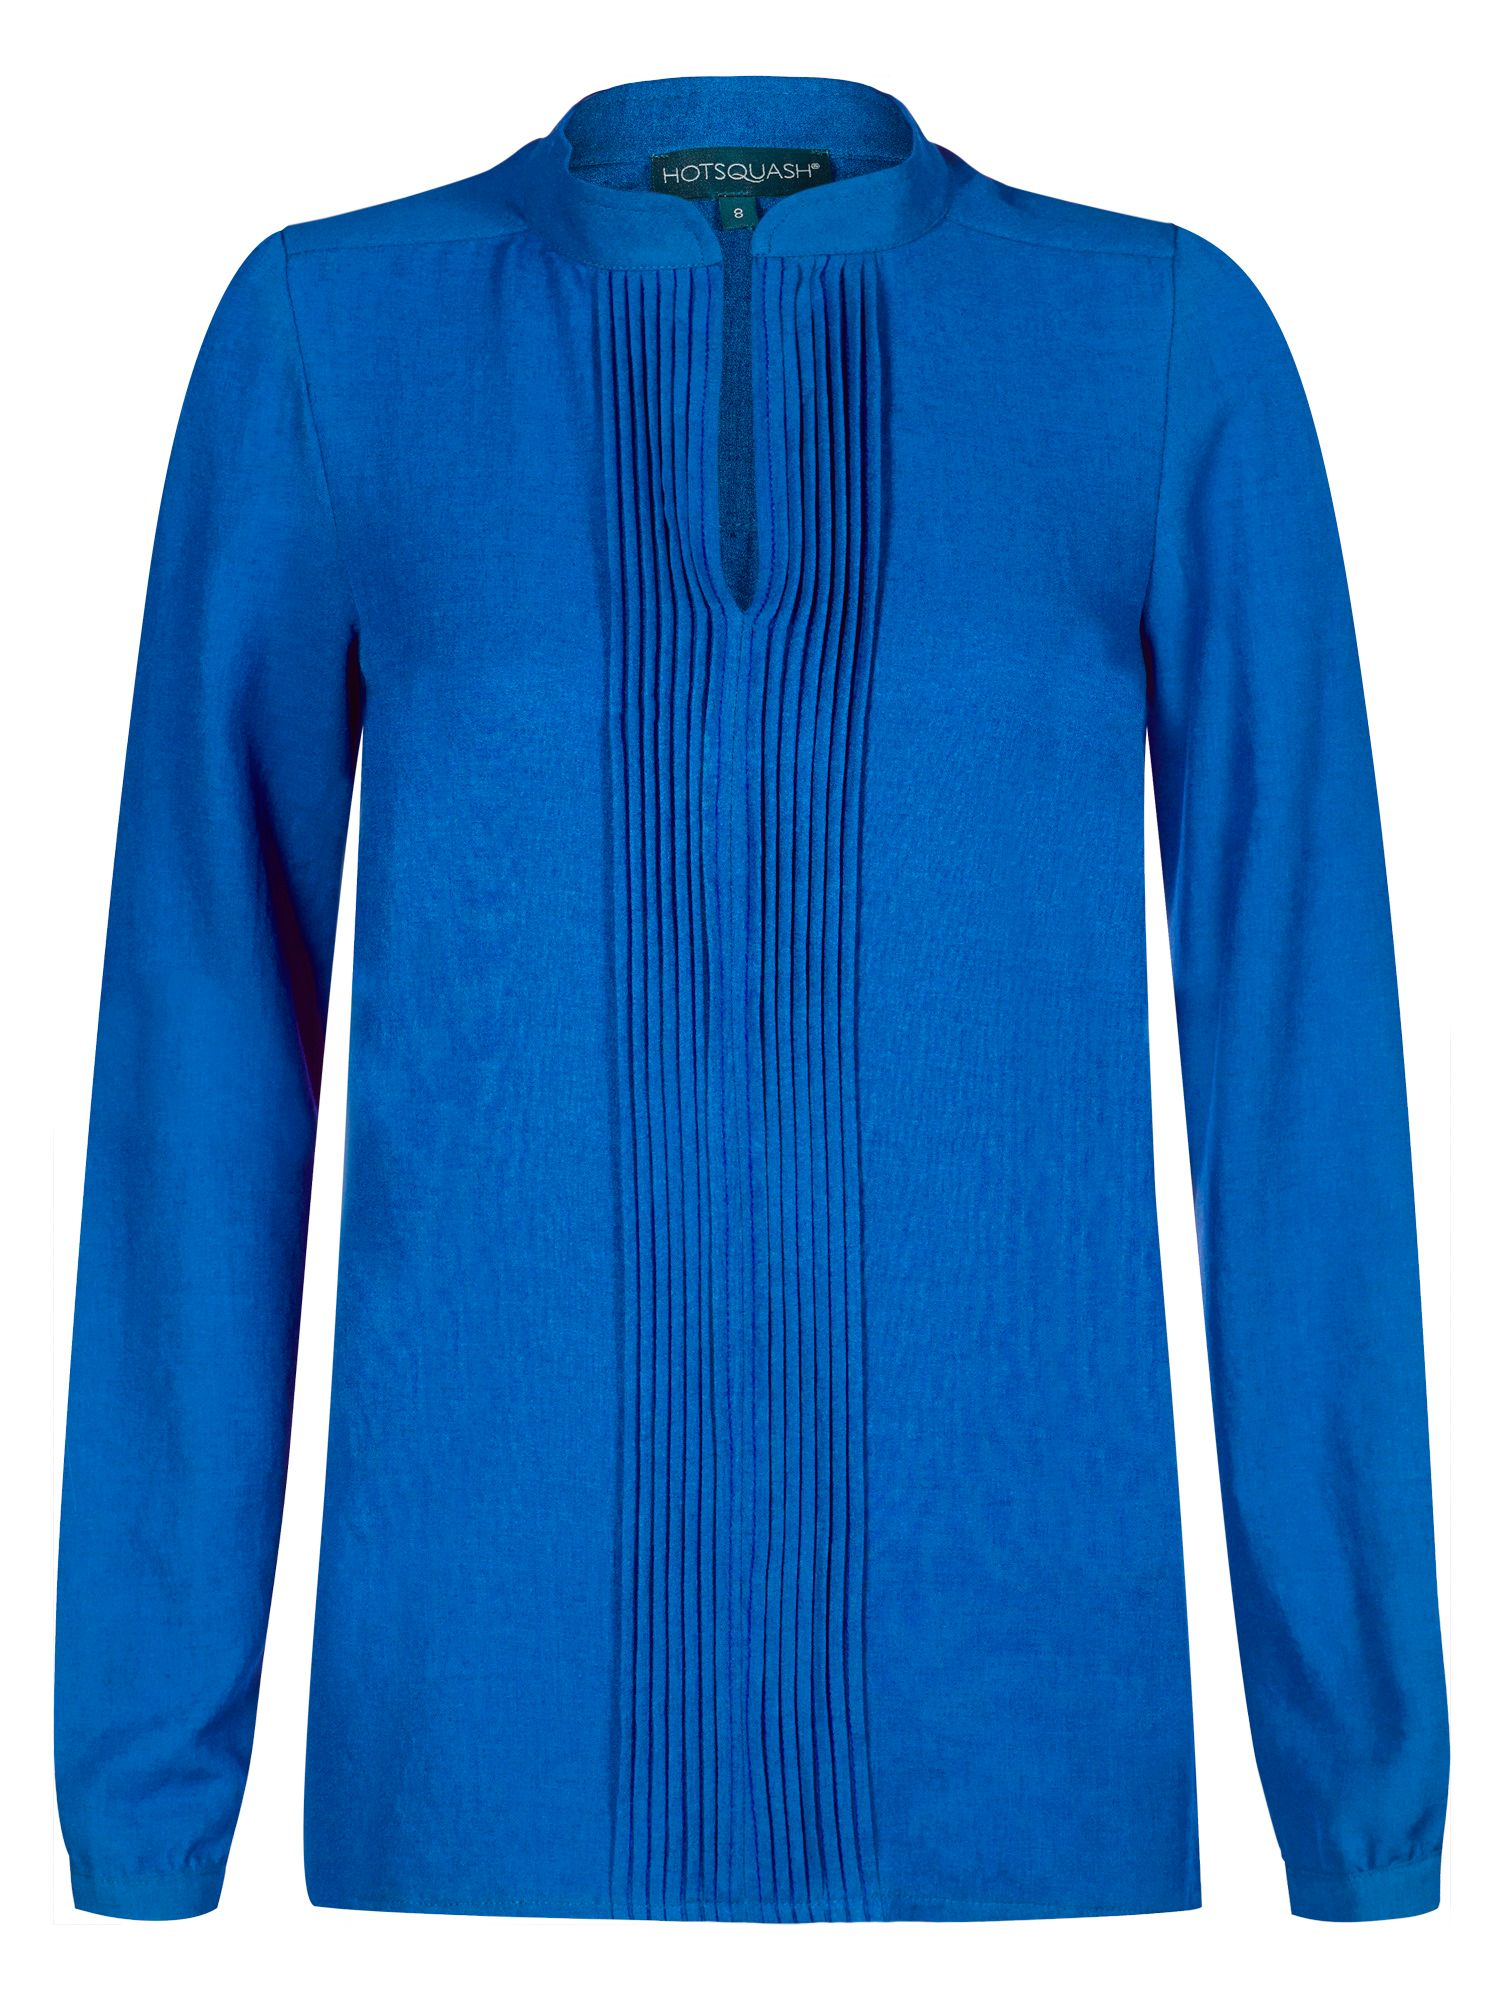 HotSquash Pleat blouse in clever fabric, Cobalt